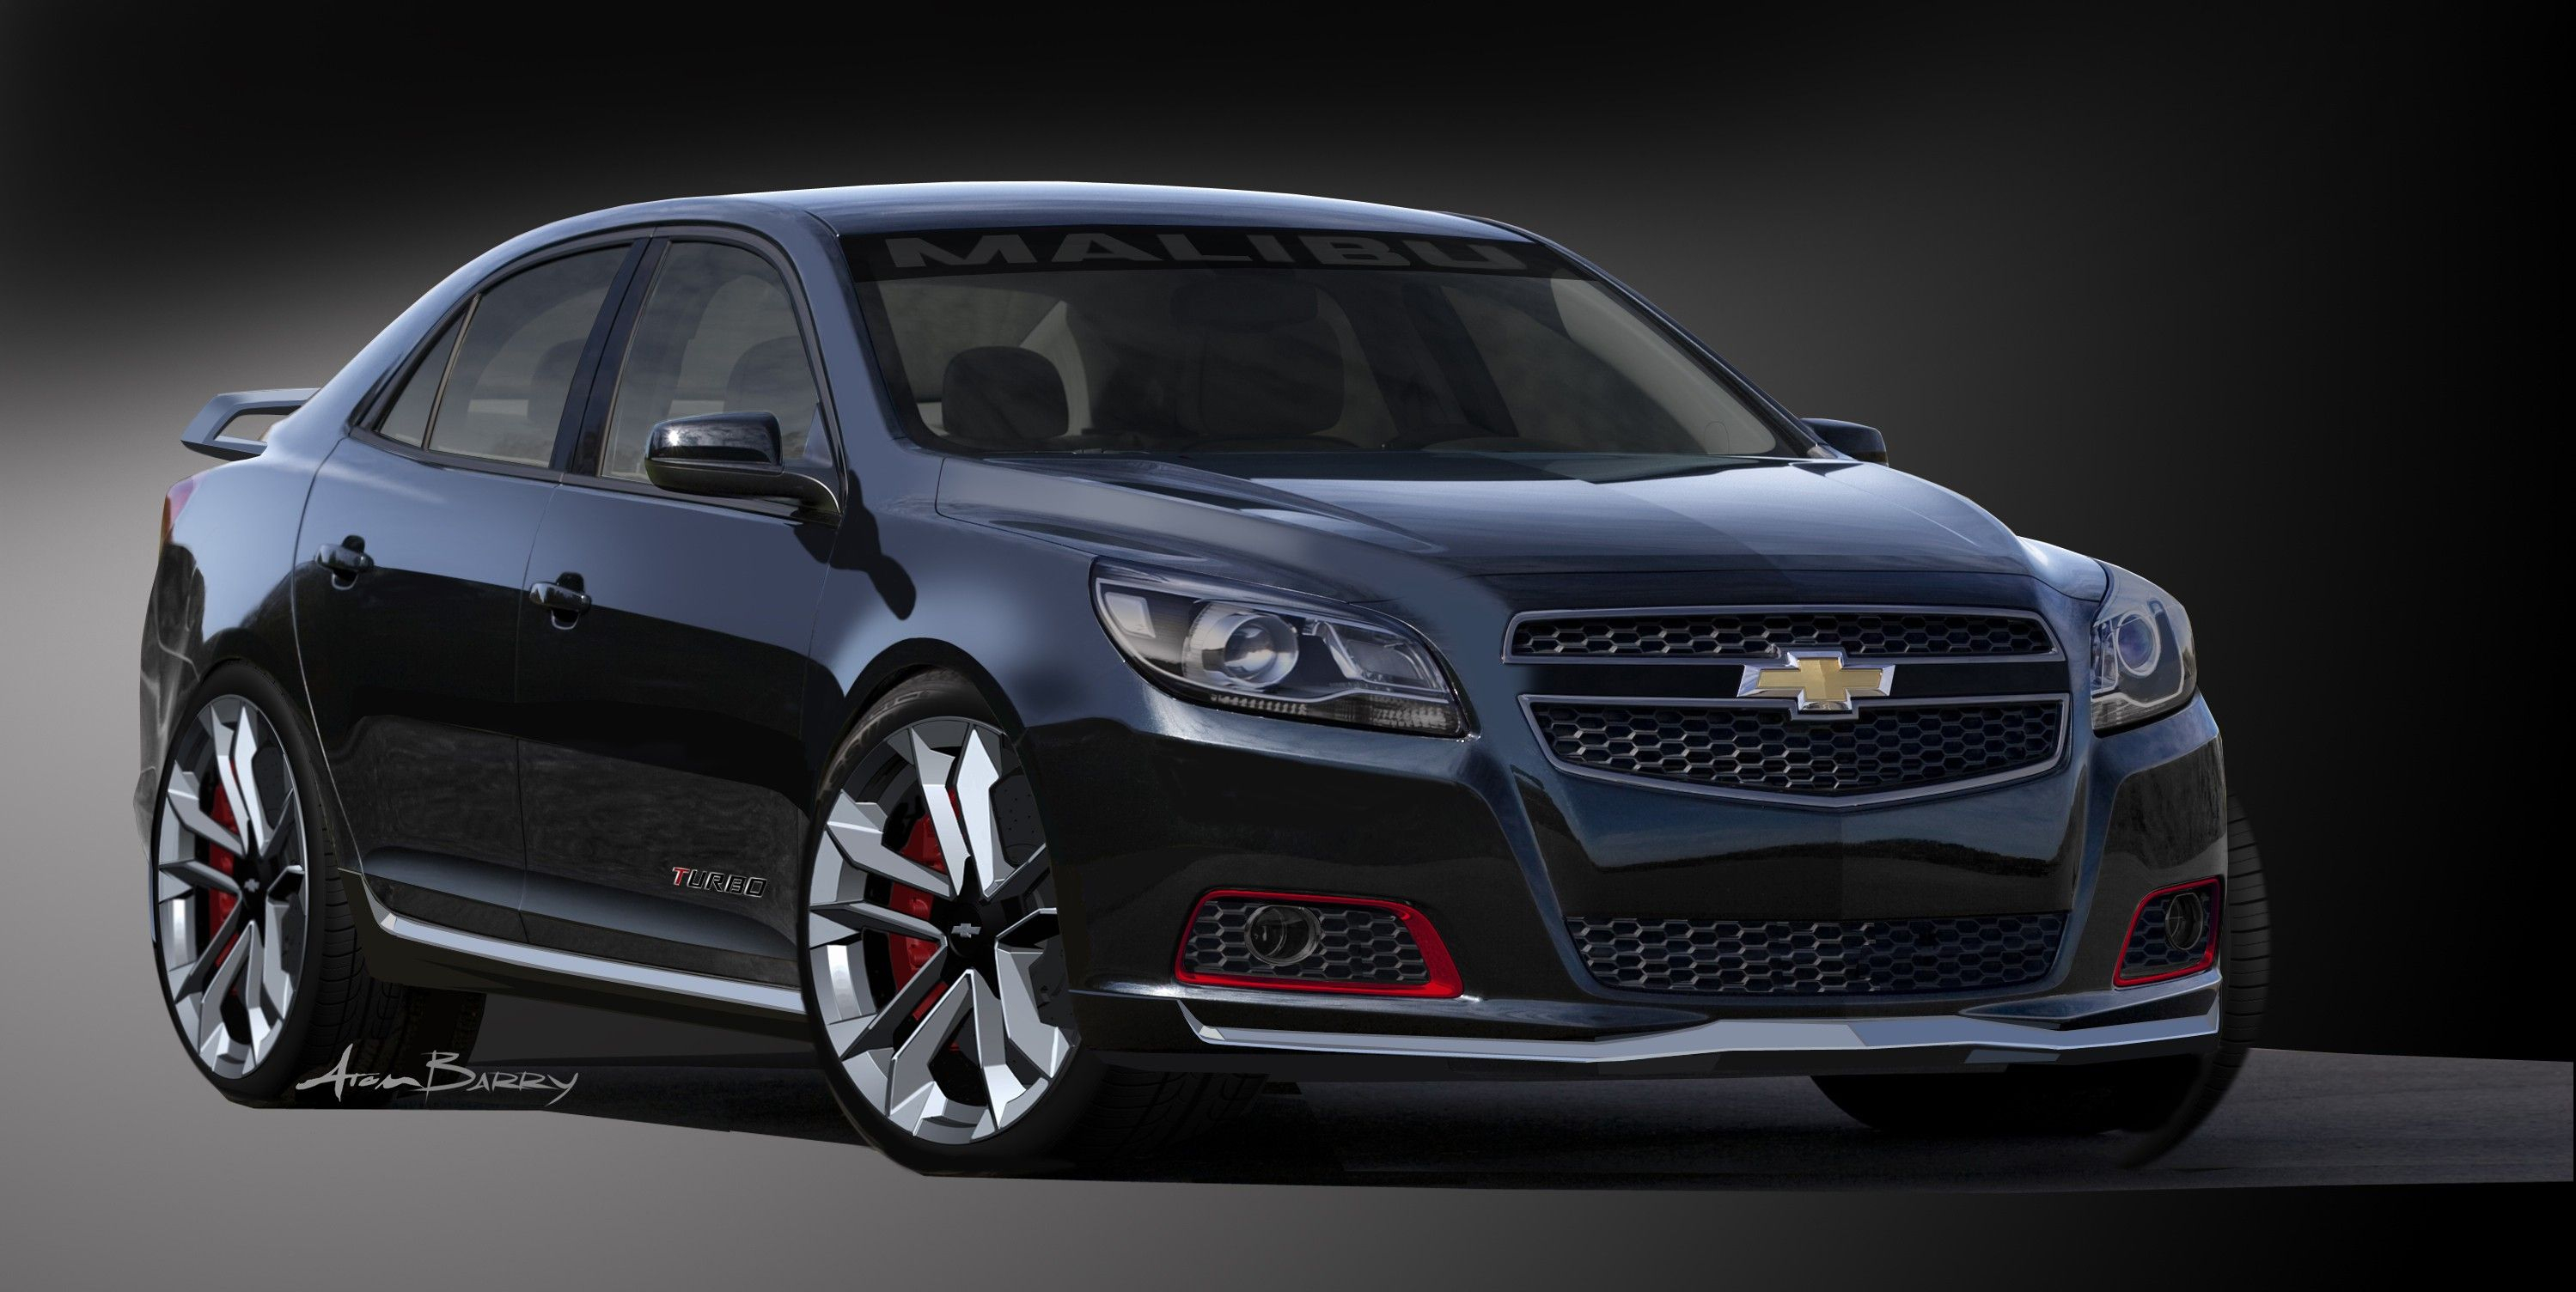 99 Best 2020 Chevrolet Cruze Price